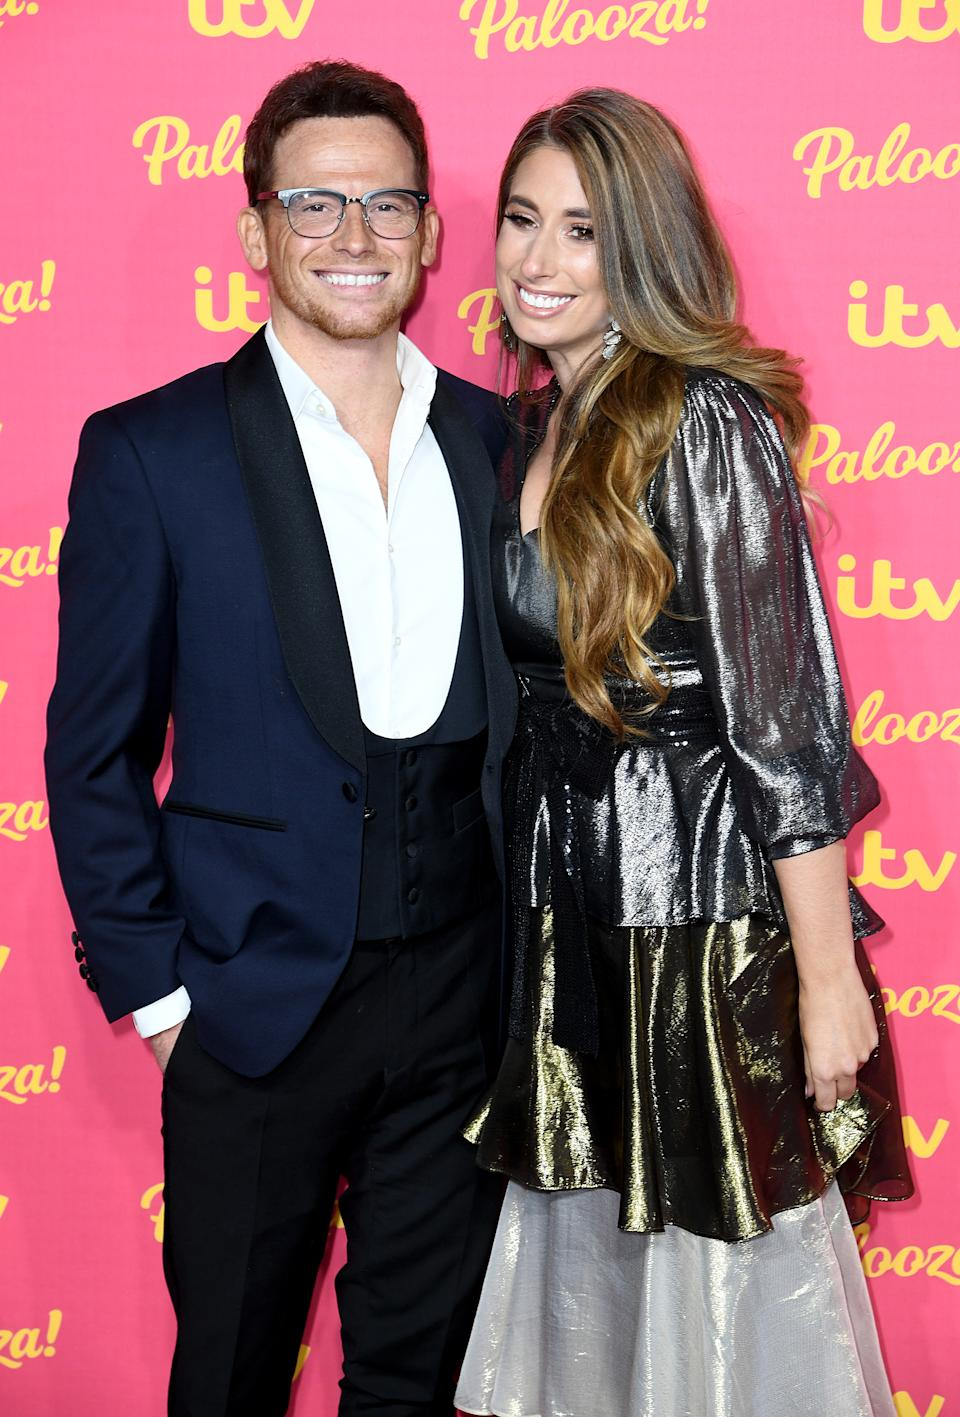 Joe Swash (left) and Stacey Solomon (right) attending the ITV Palooza held at the Royal Festival Hall, Southbank Centre, London.